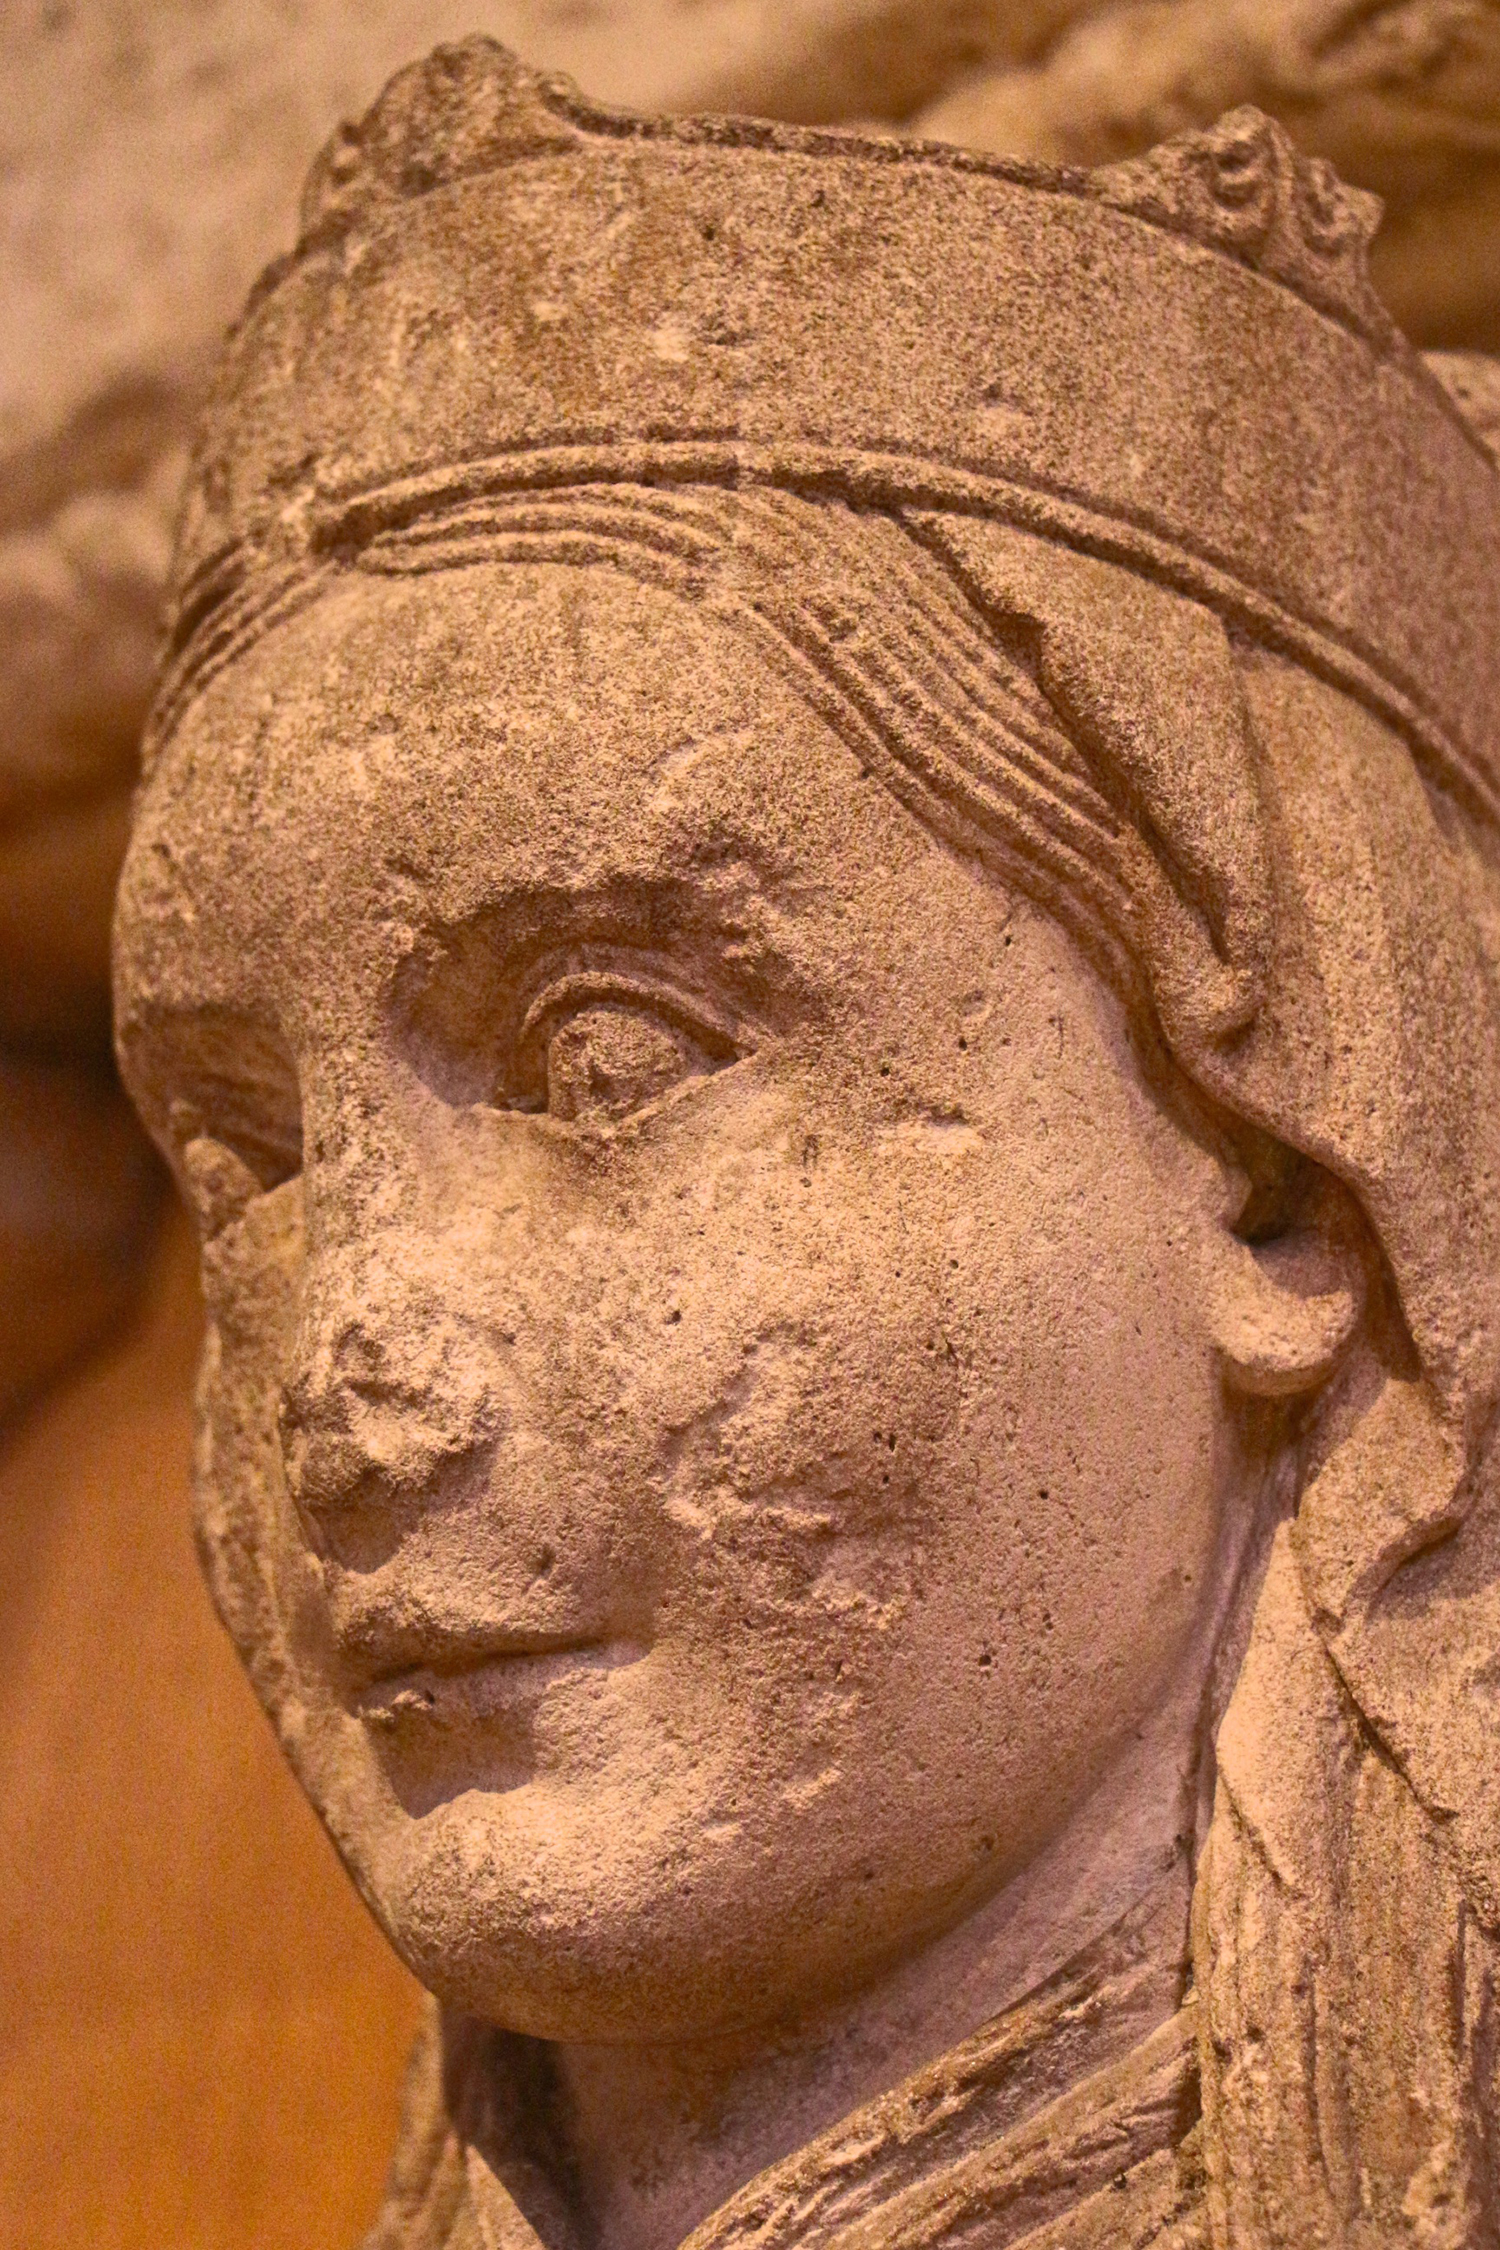 Figure 6: The sculpture's lips are set in a relaxed, mirthful manner, regarding onlookers with a pleased expression.